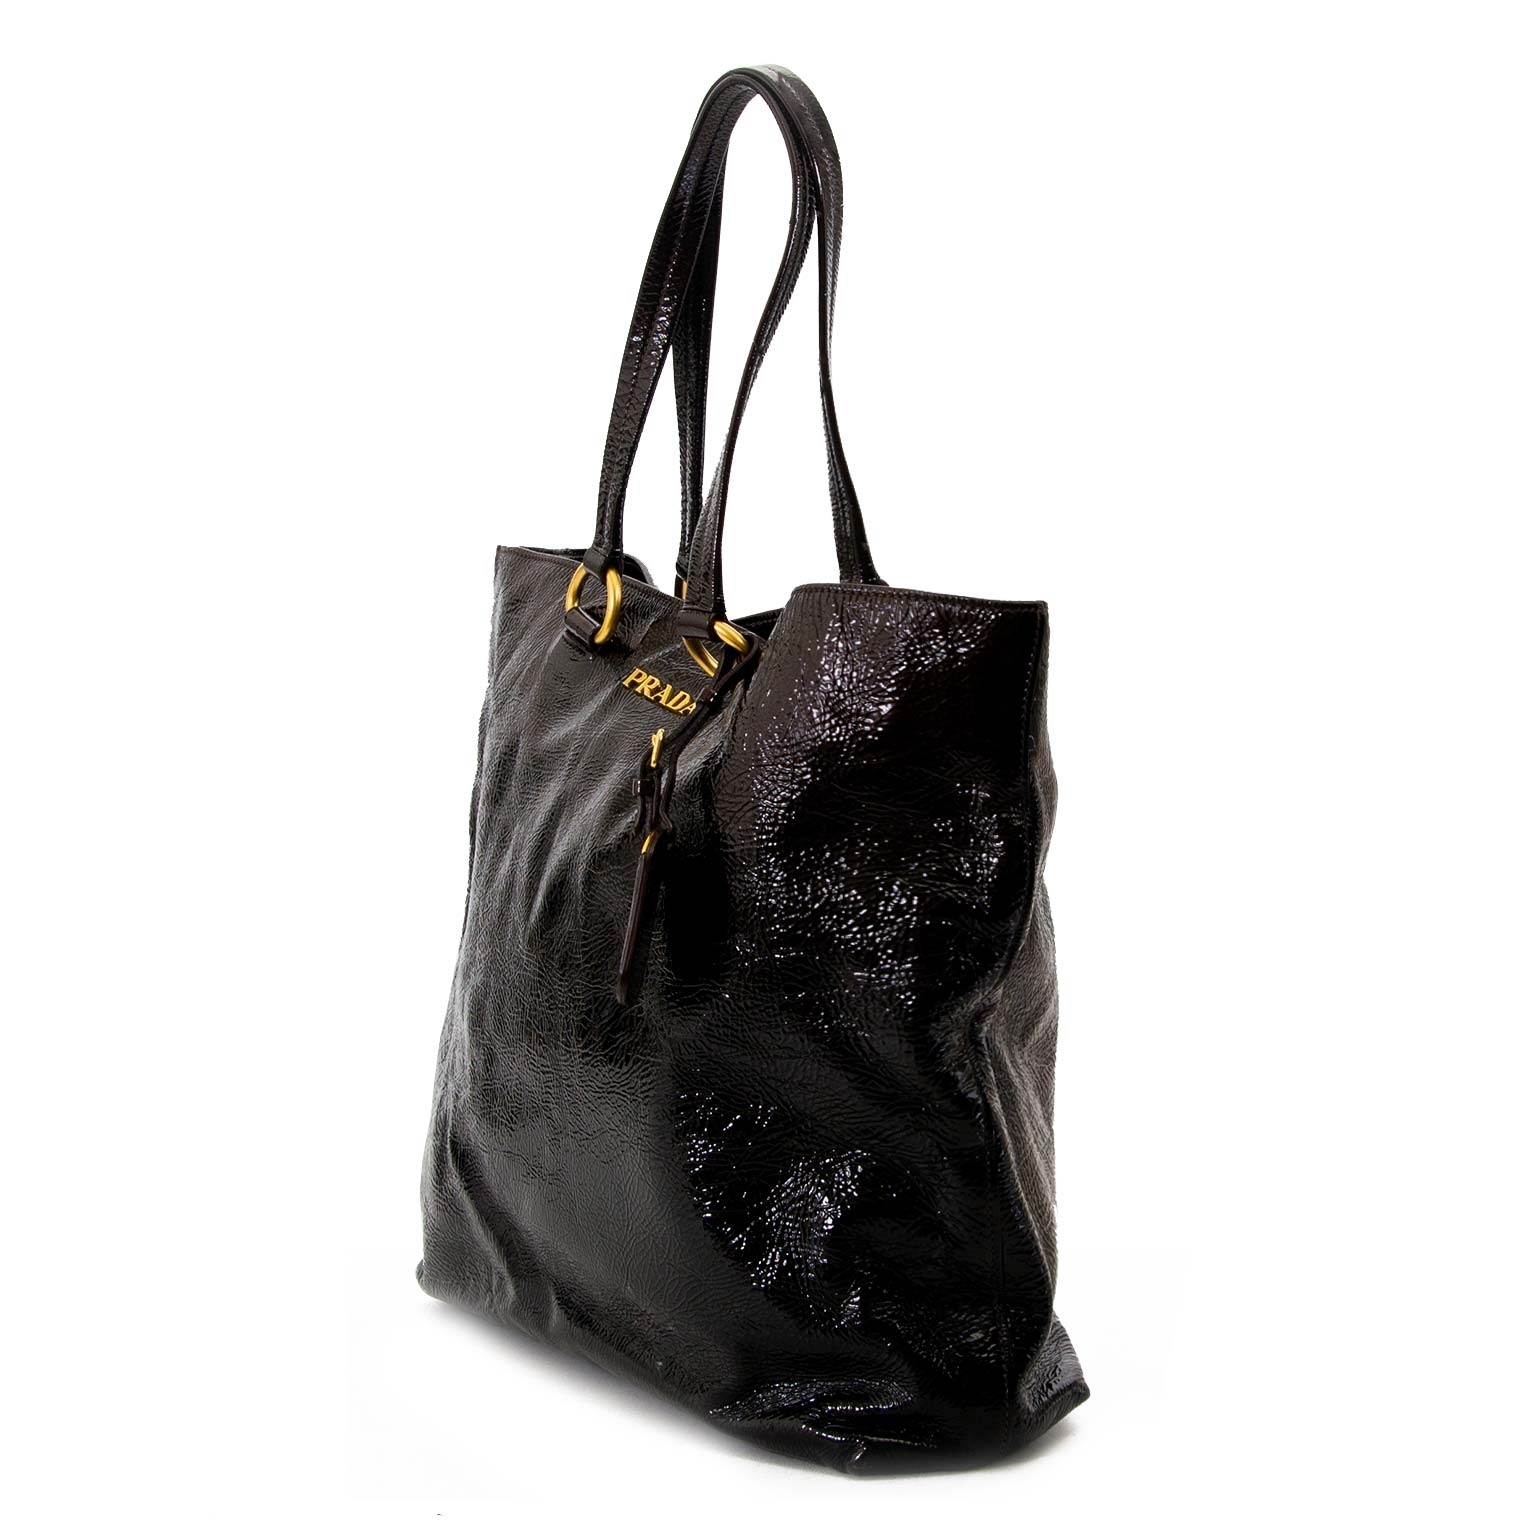 Prada Dark Brown Patent Leather Tote Bag now for sale at labellov antwerp for the best price